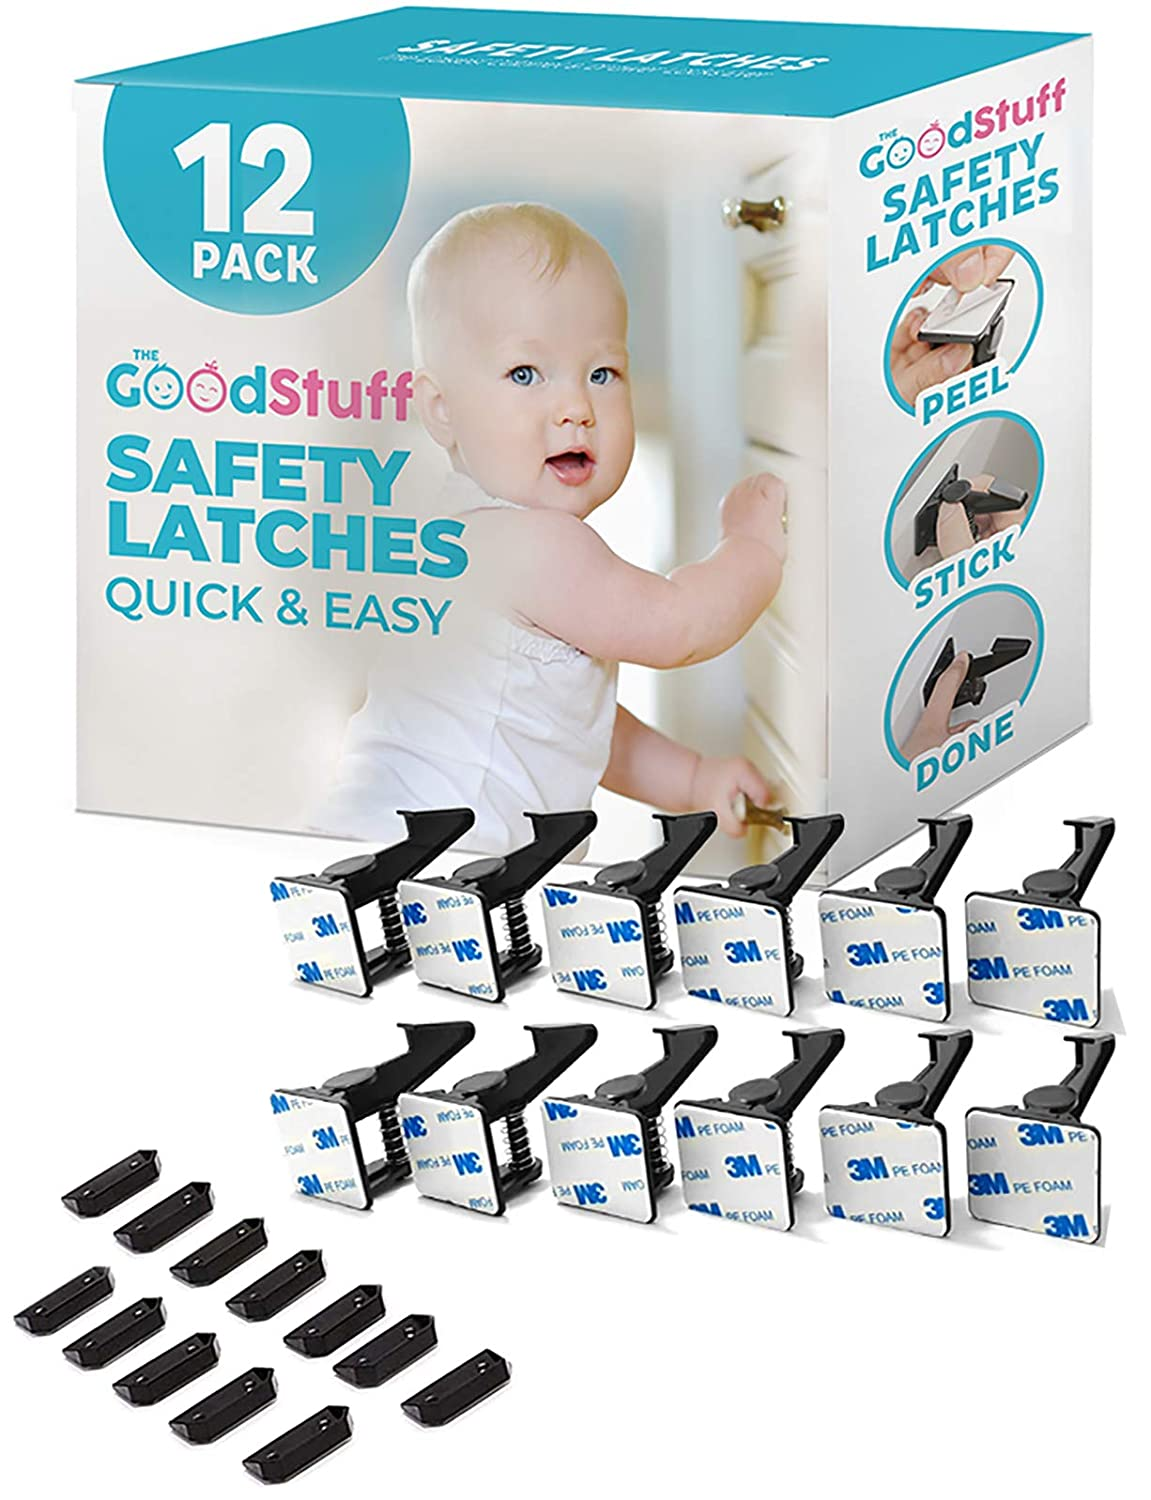 Cabinet service Locks Child Safety Inventory cleanup selling sale Latches - Easy and Bab Adhesive Quick